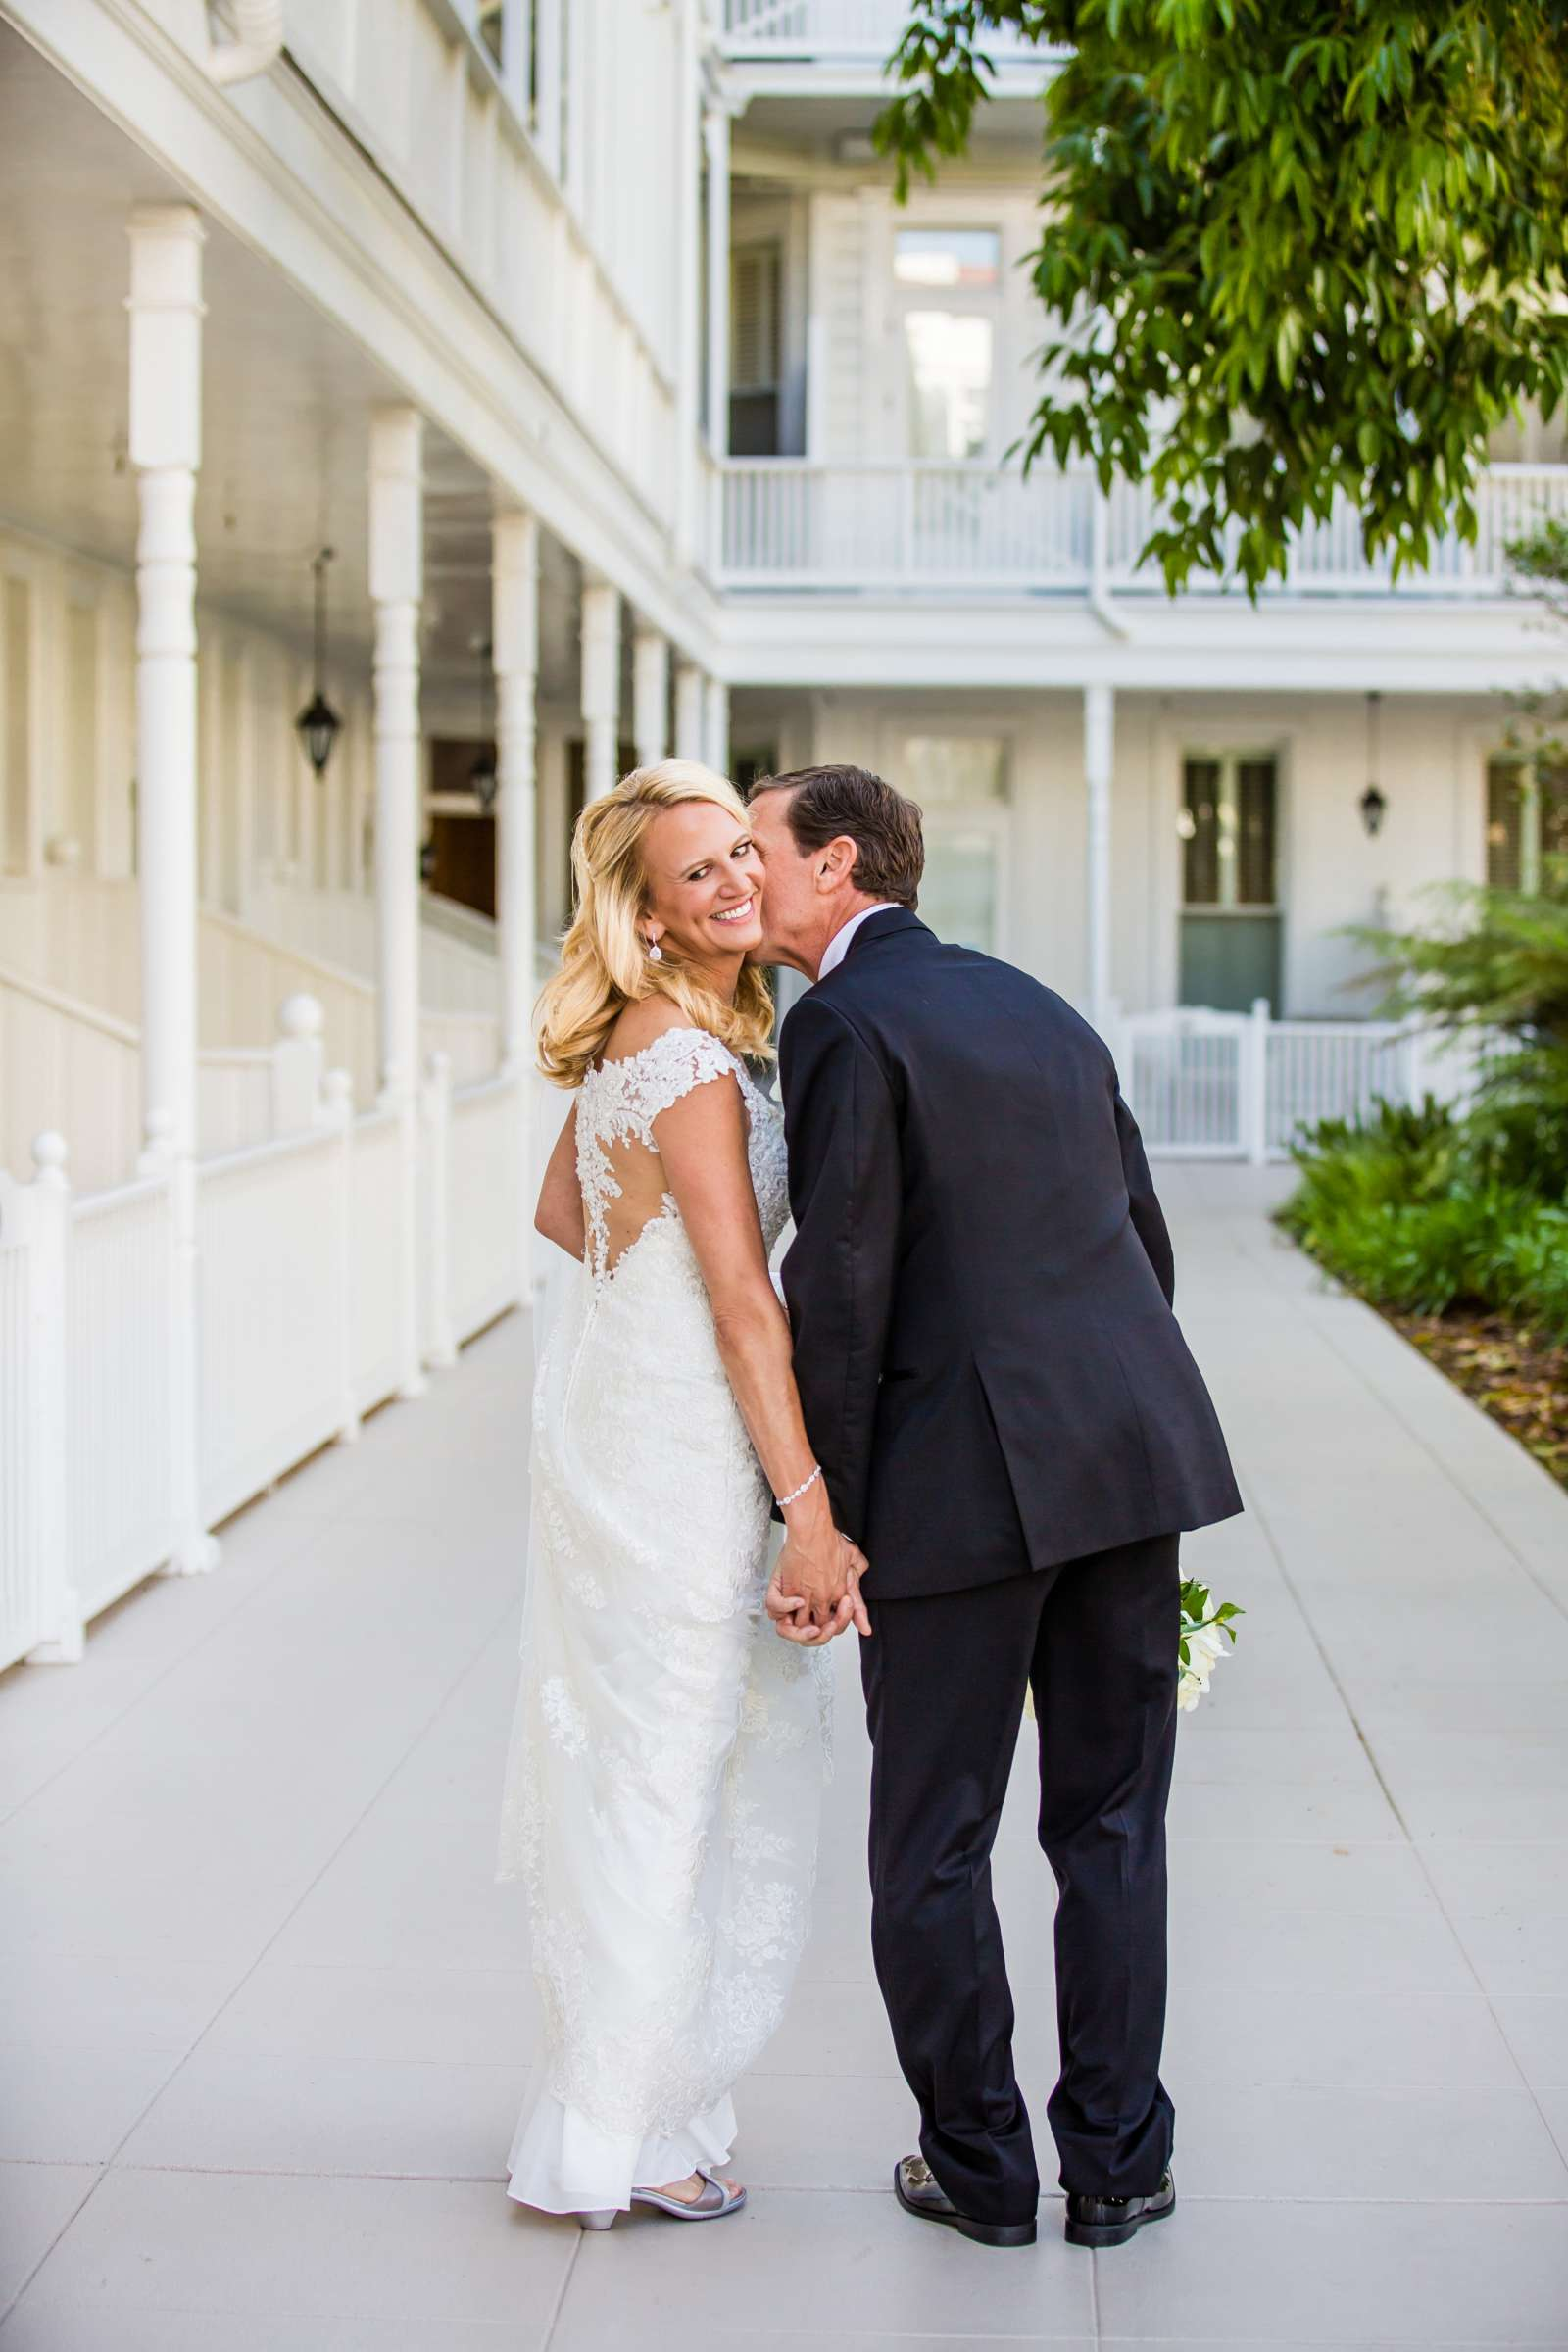 Hotel Del Coronado Wedding coordinated by Creative Affairs Inc, Diane and Paul Wedding Photo #3 by True Photography